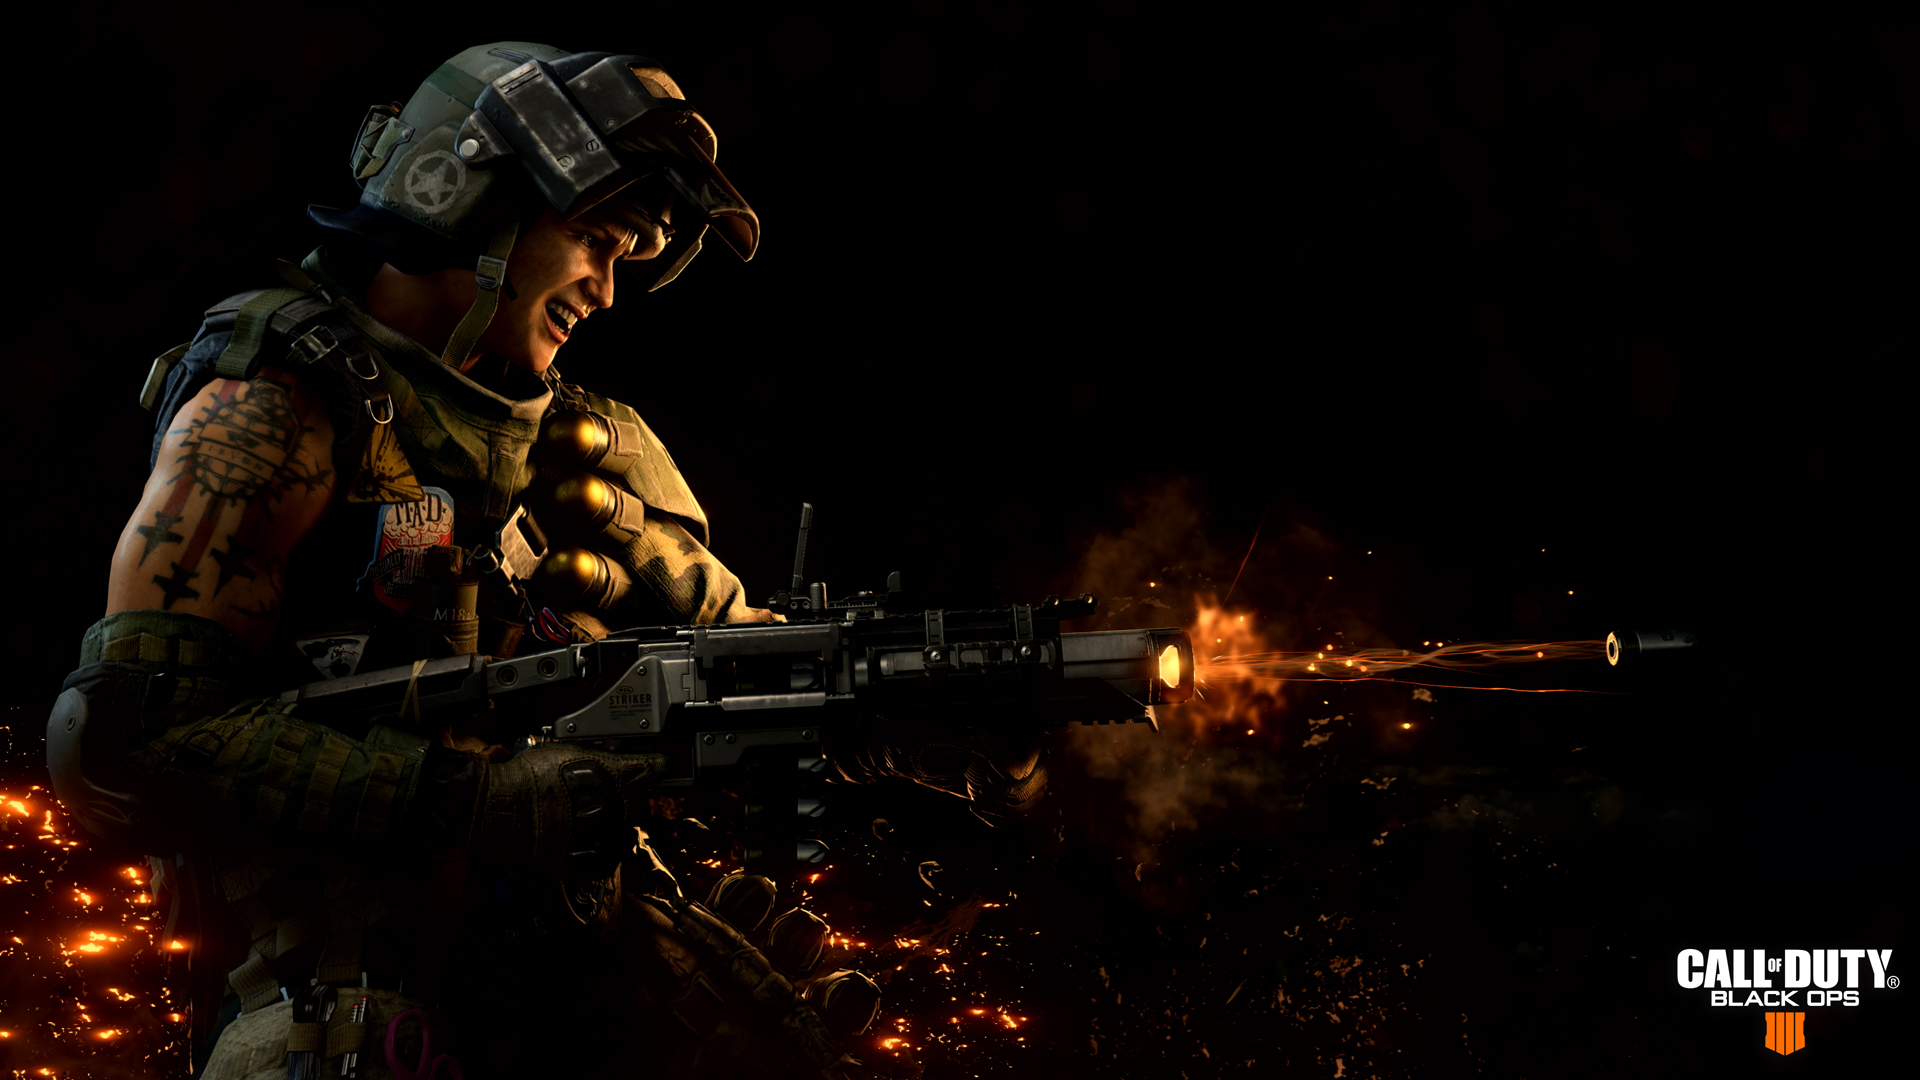 Call-of-Duty-Black-Ops-4_multiplayer_Bat